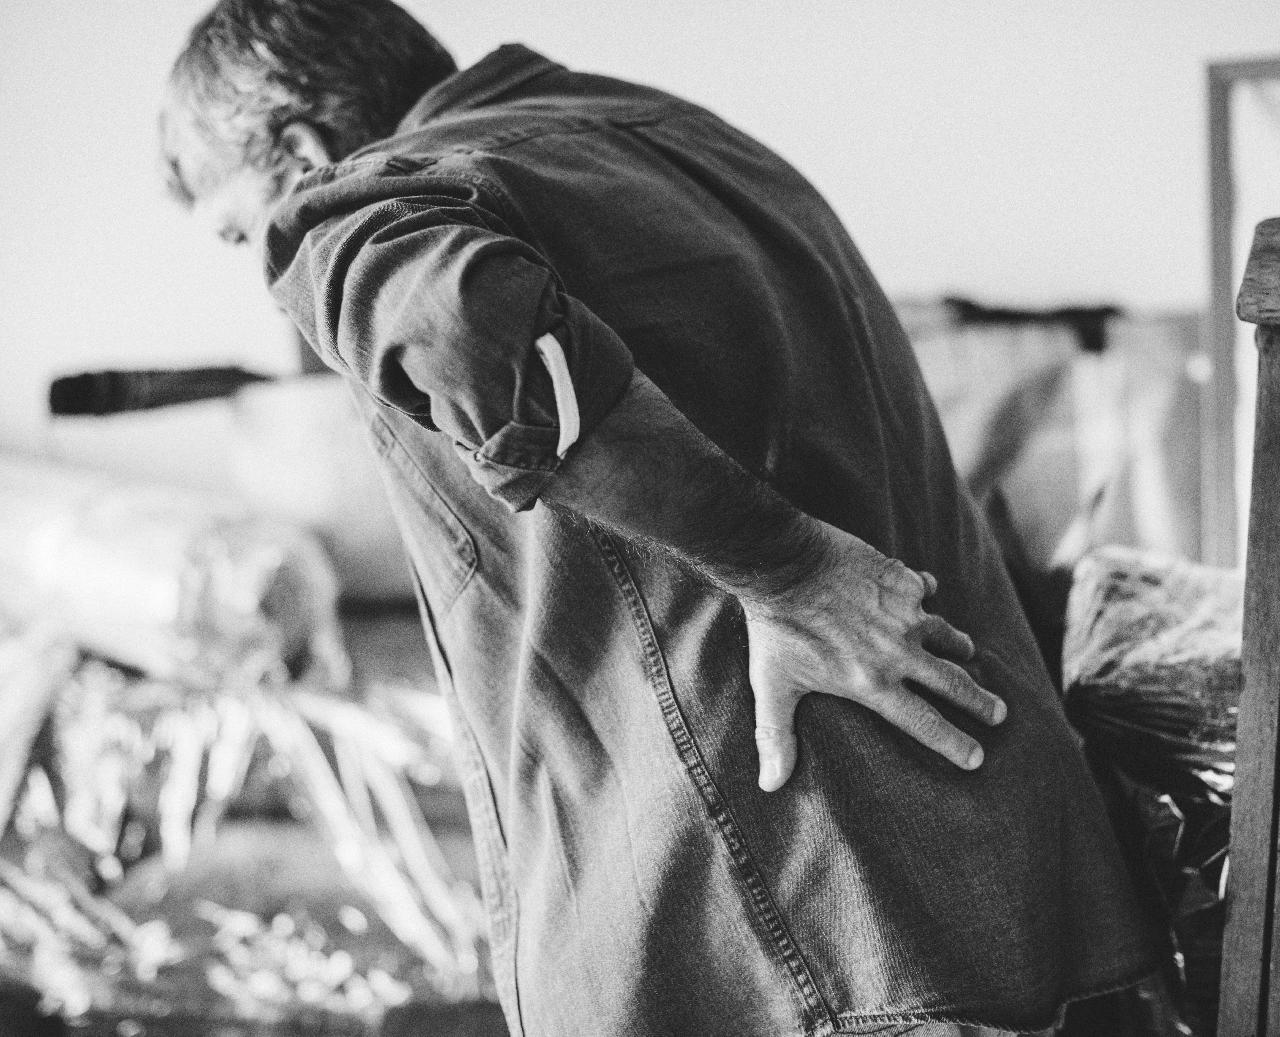 Top 5 Questions About Back Surgery to Ask Your Doctor